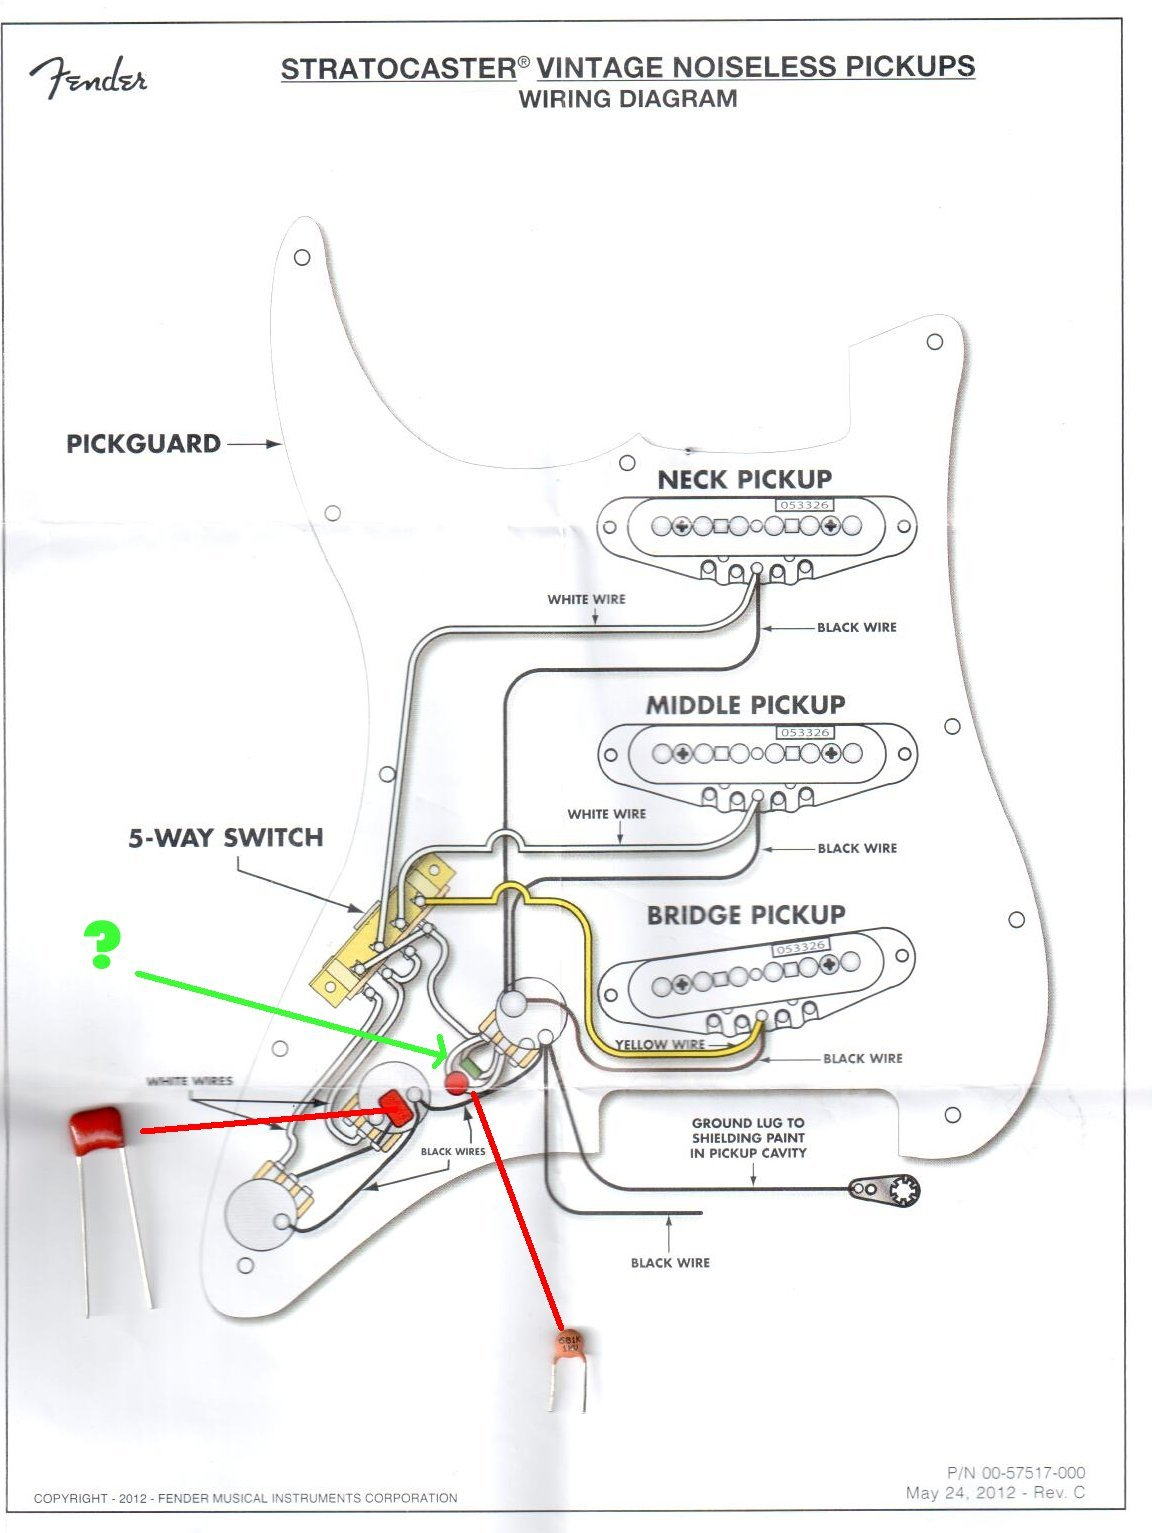 fender vintage noiseless pickups wiring diagram Collection-fender vintage noiseless pickups wiring diagram Unique Amazing Wiring Diagrams For Fender Classic 50s Player With 13-a